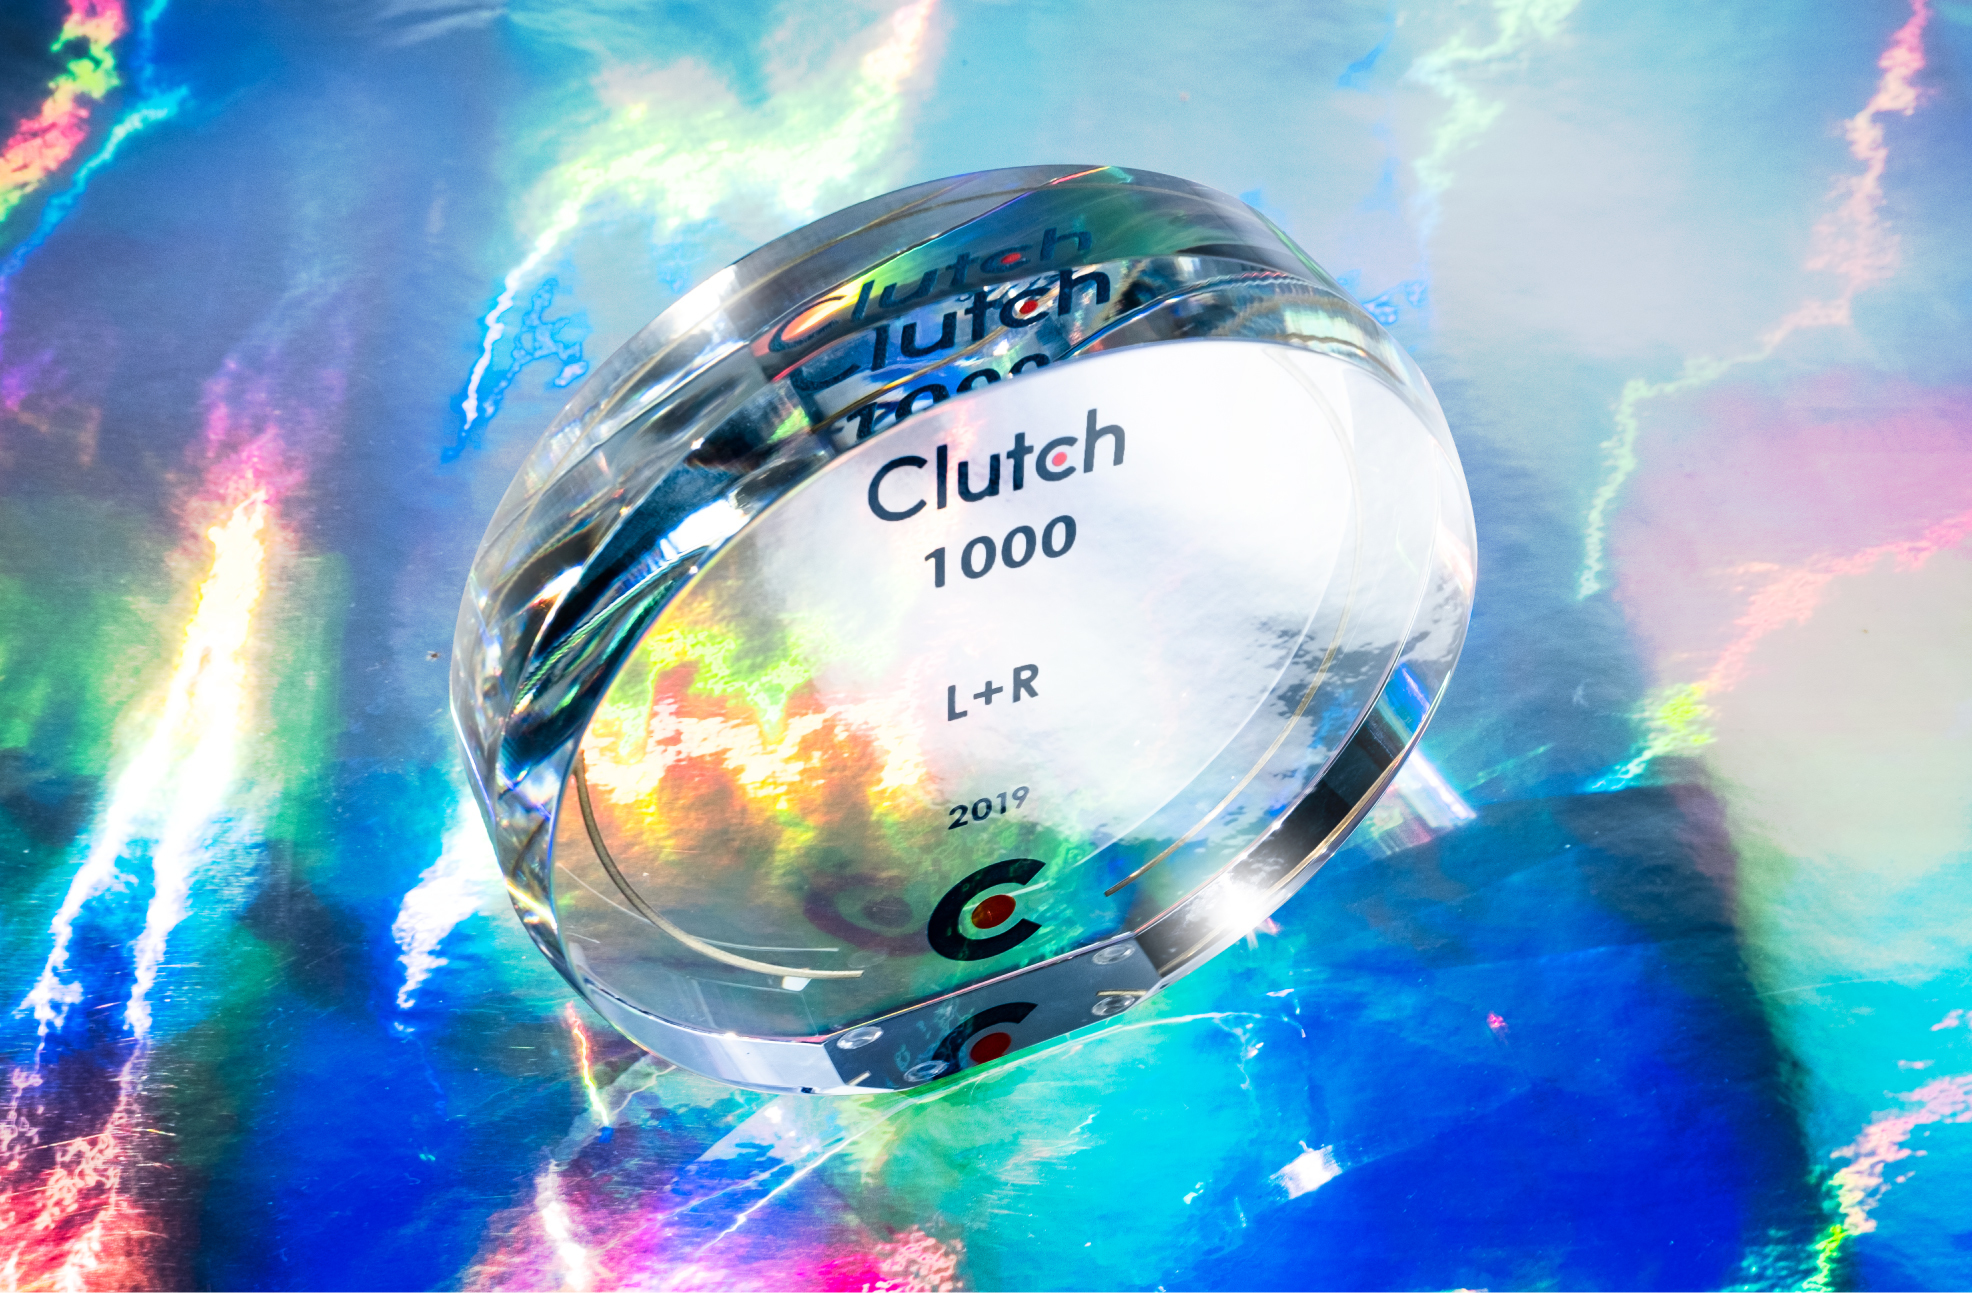 L+R named on the international Clutch 1000